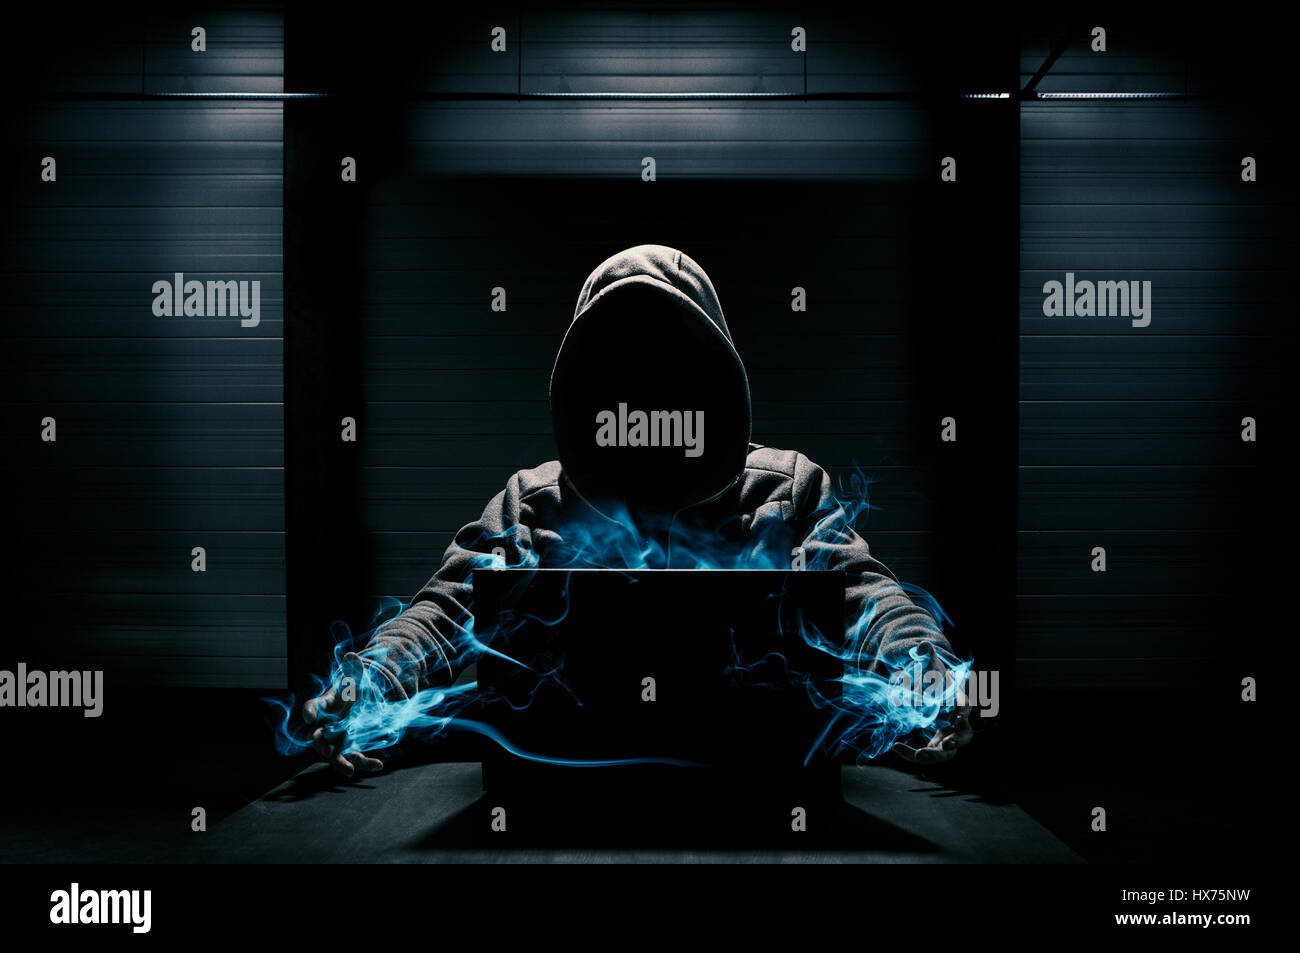 Abstract conception of hacker that takes control over laptop - Stock Image